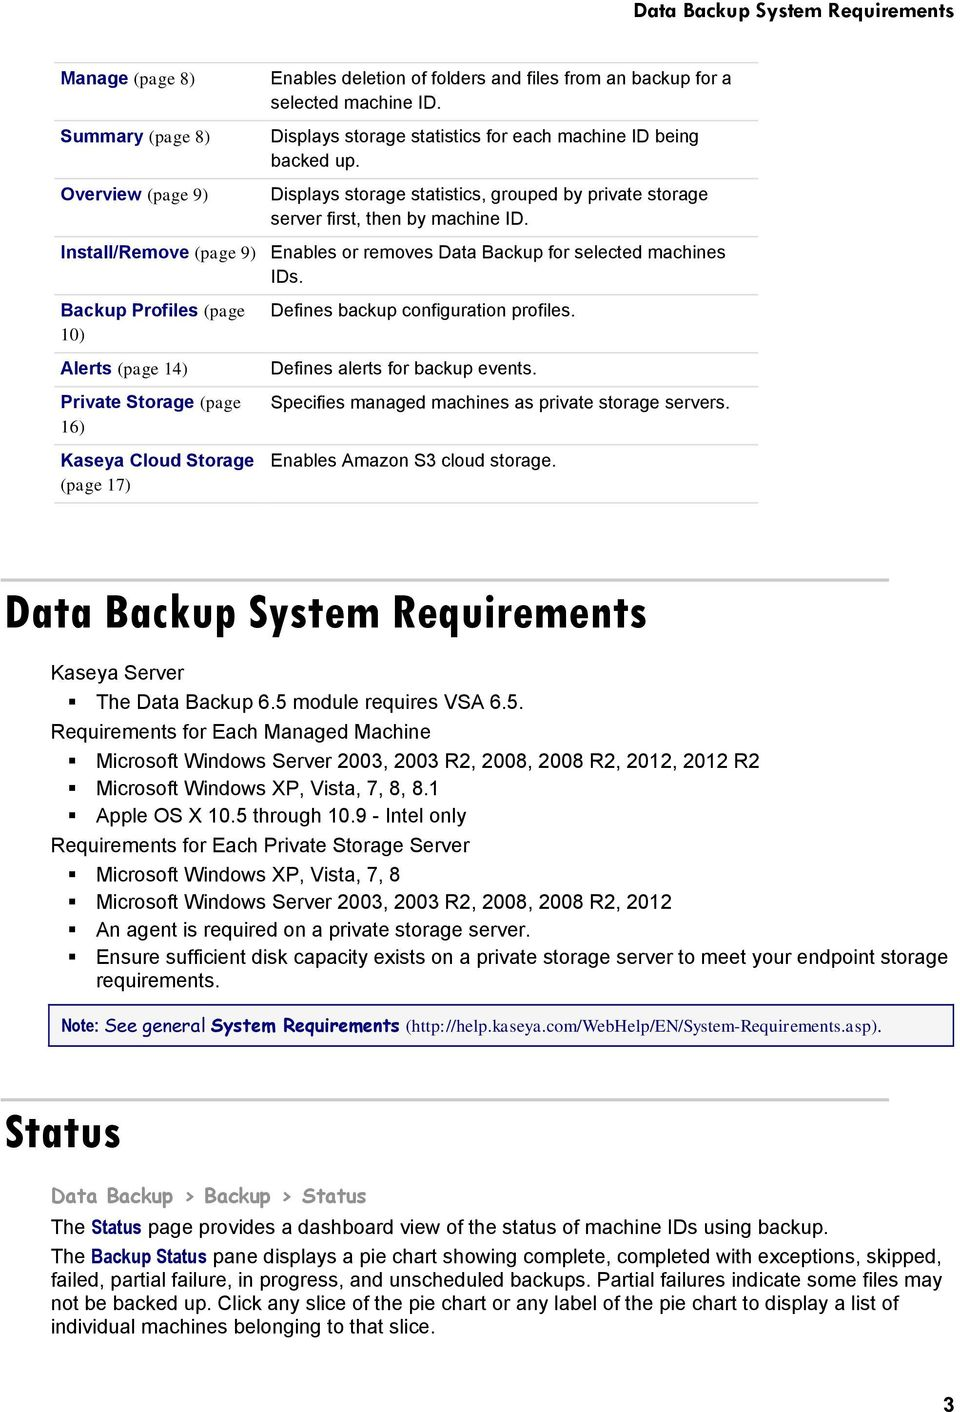 Install/Remove (page 9) Enables or removes Data Backup for selected machines IDs.